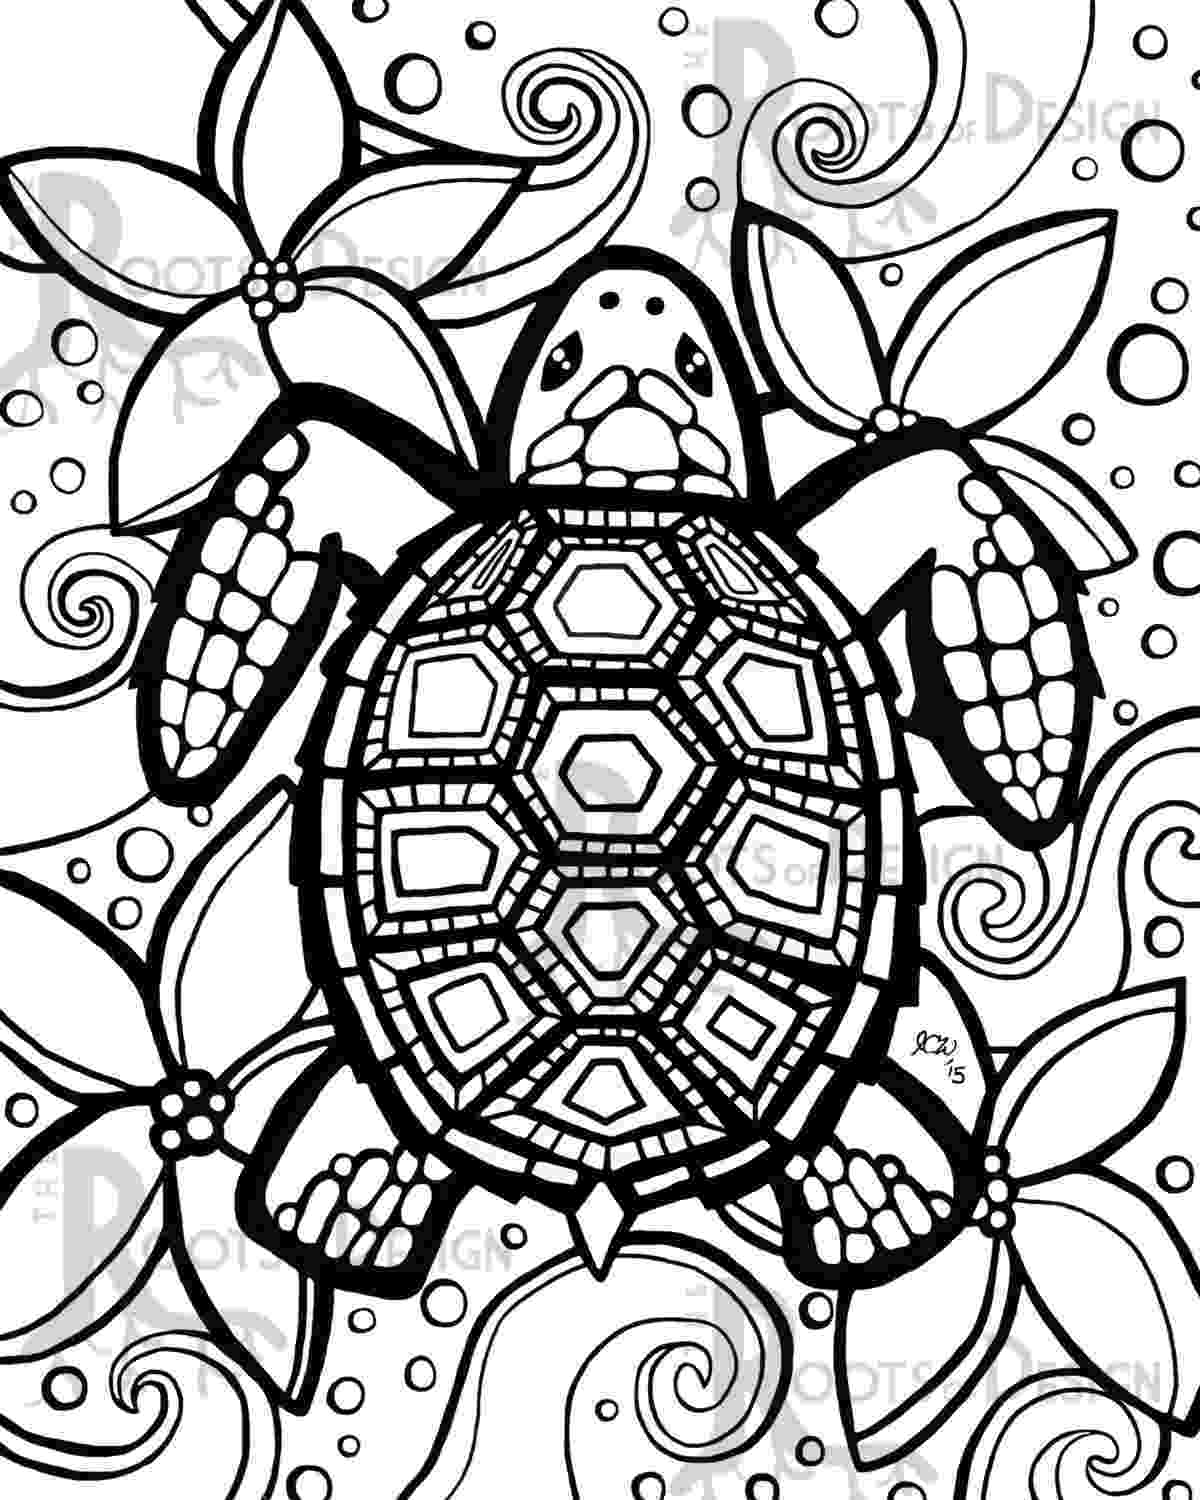 coloring books for stress relief free downloadable stress relief coloring design herbalshop books stress for relief coloring